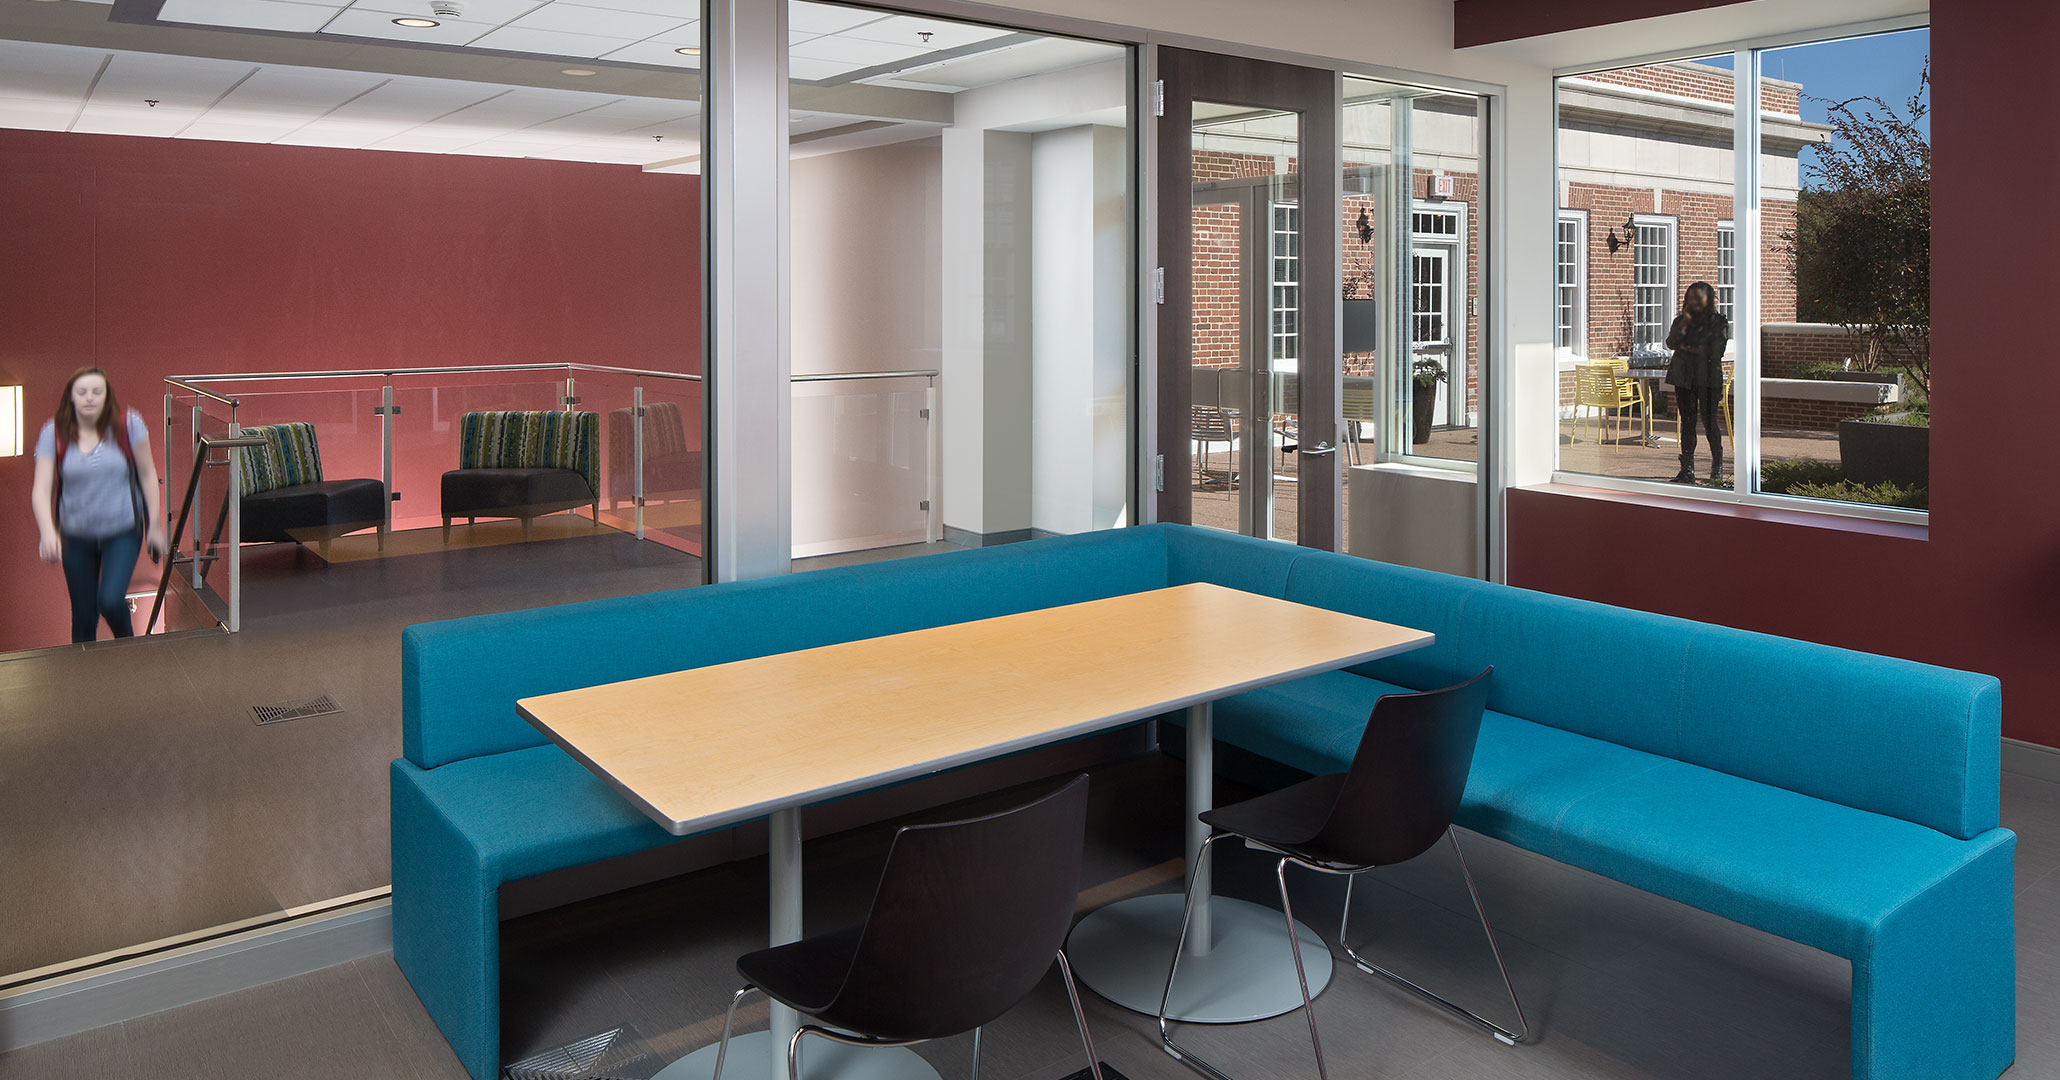 UofSC worked with Boudreaux architects in Columbia, SC to design flexible student spaces.